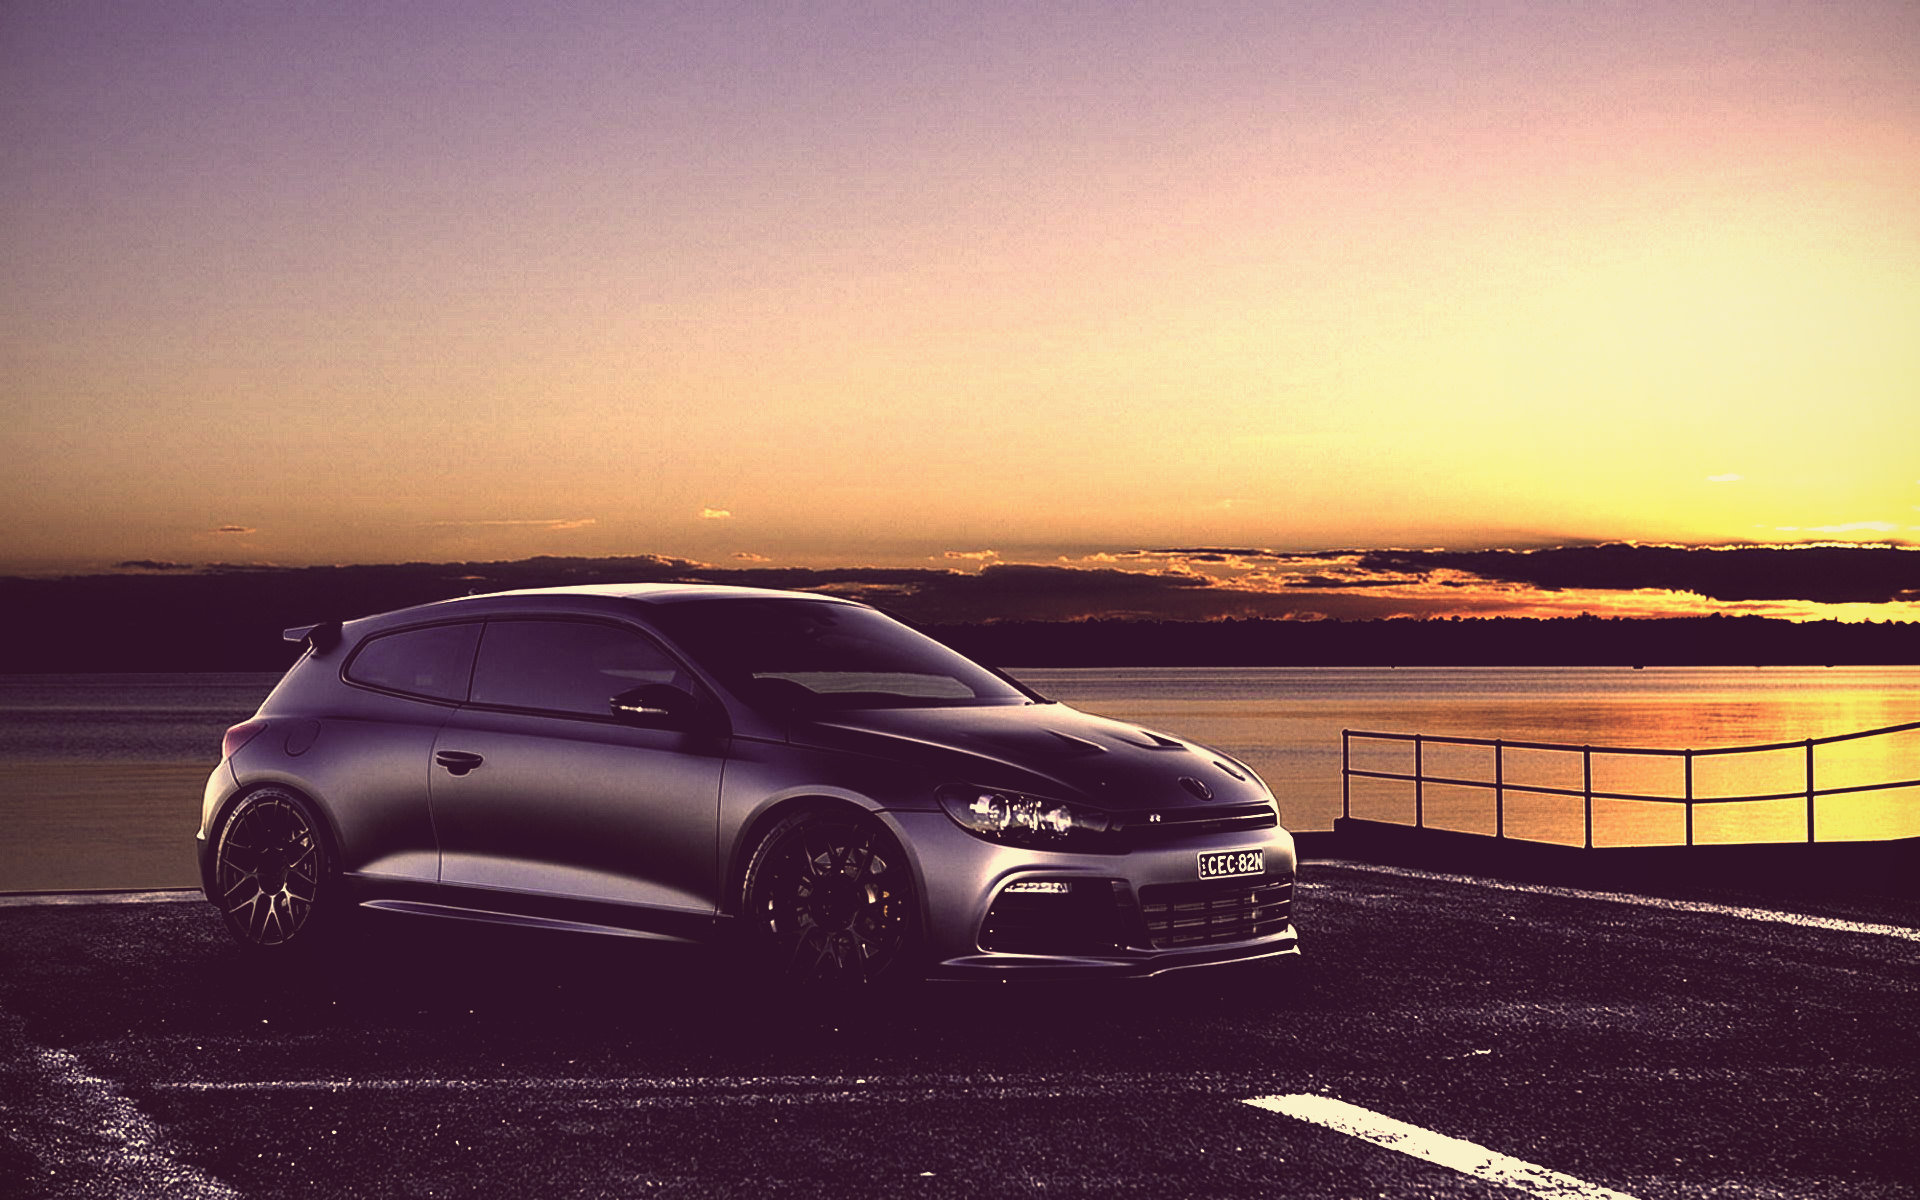 Vw Scirocco Wallpaper